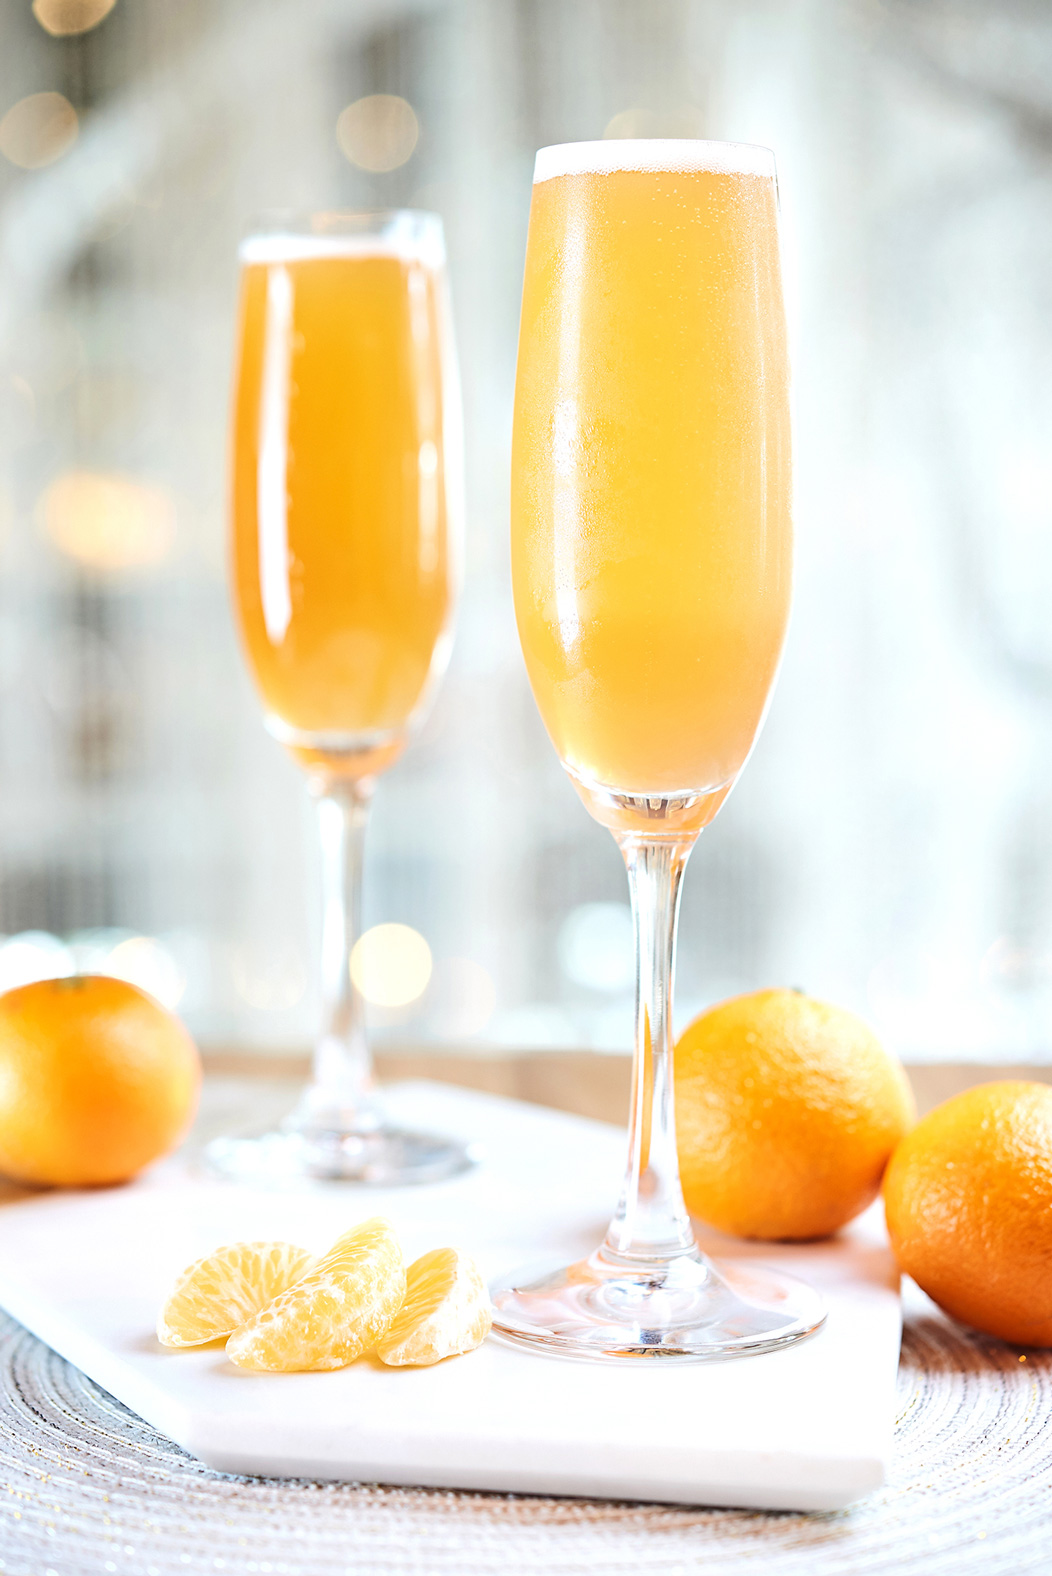 morimoto-asia-brunch-champagne-mimosa-beverage-photography